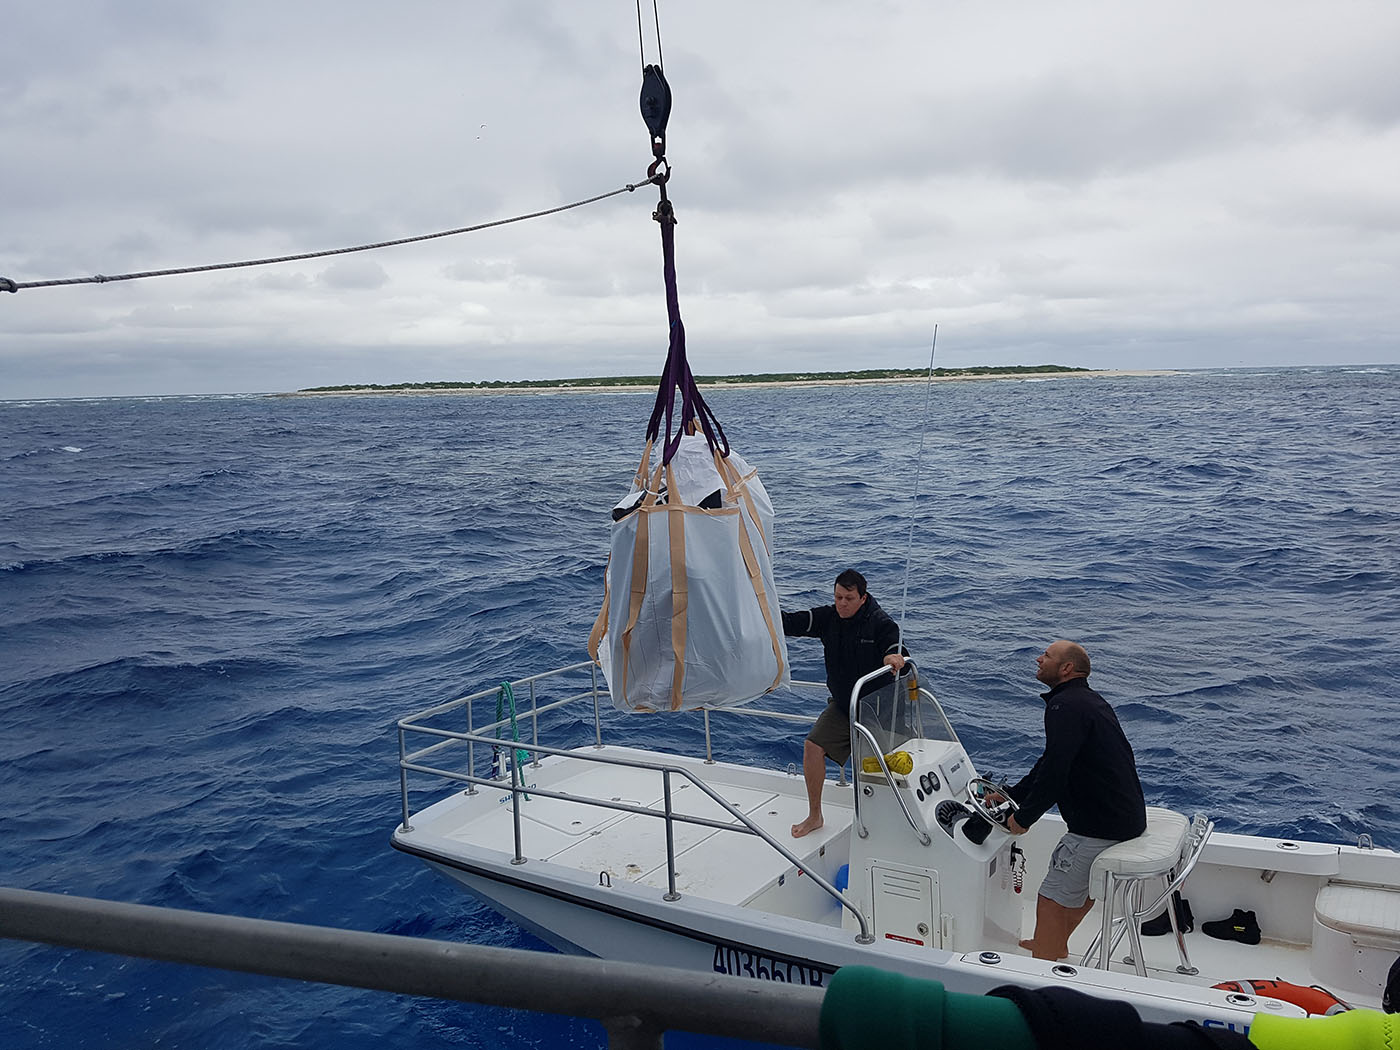 Transferring equipment from the tender to the Odyssey